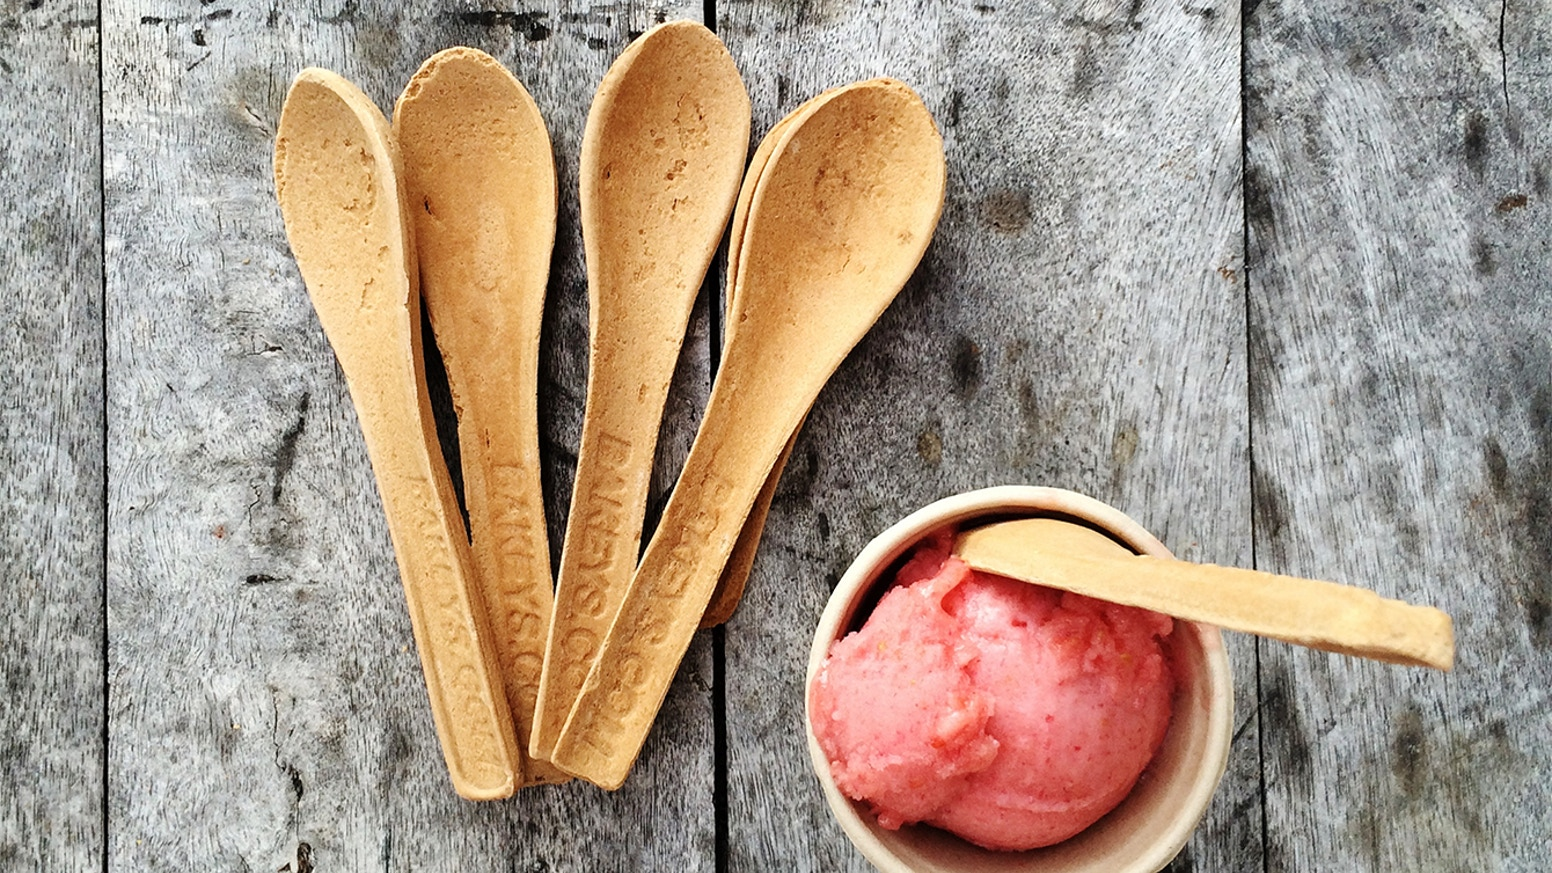 We are gearing up to create the world's first mass produced edible cutlery. This has huge potential to prevent plastic waste.